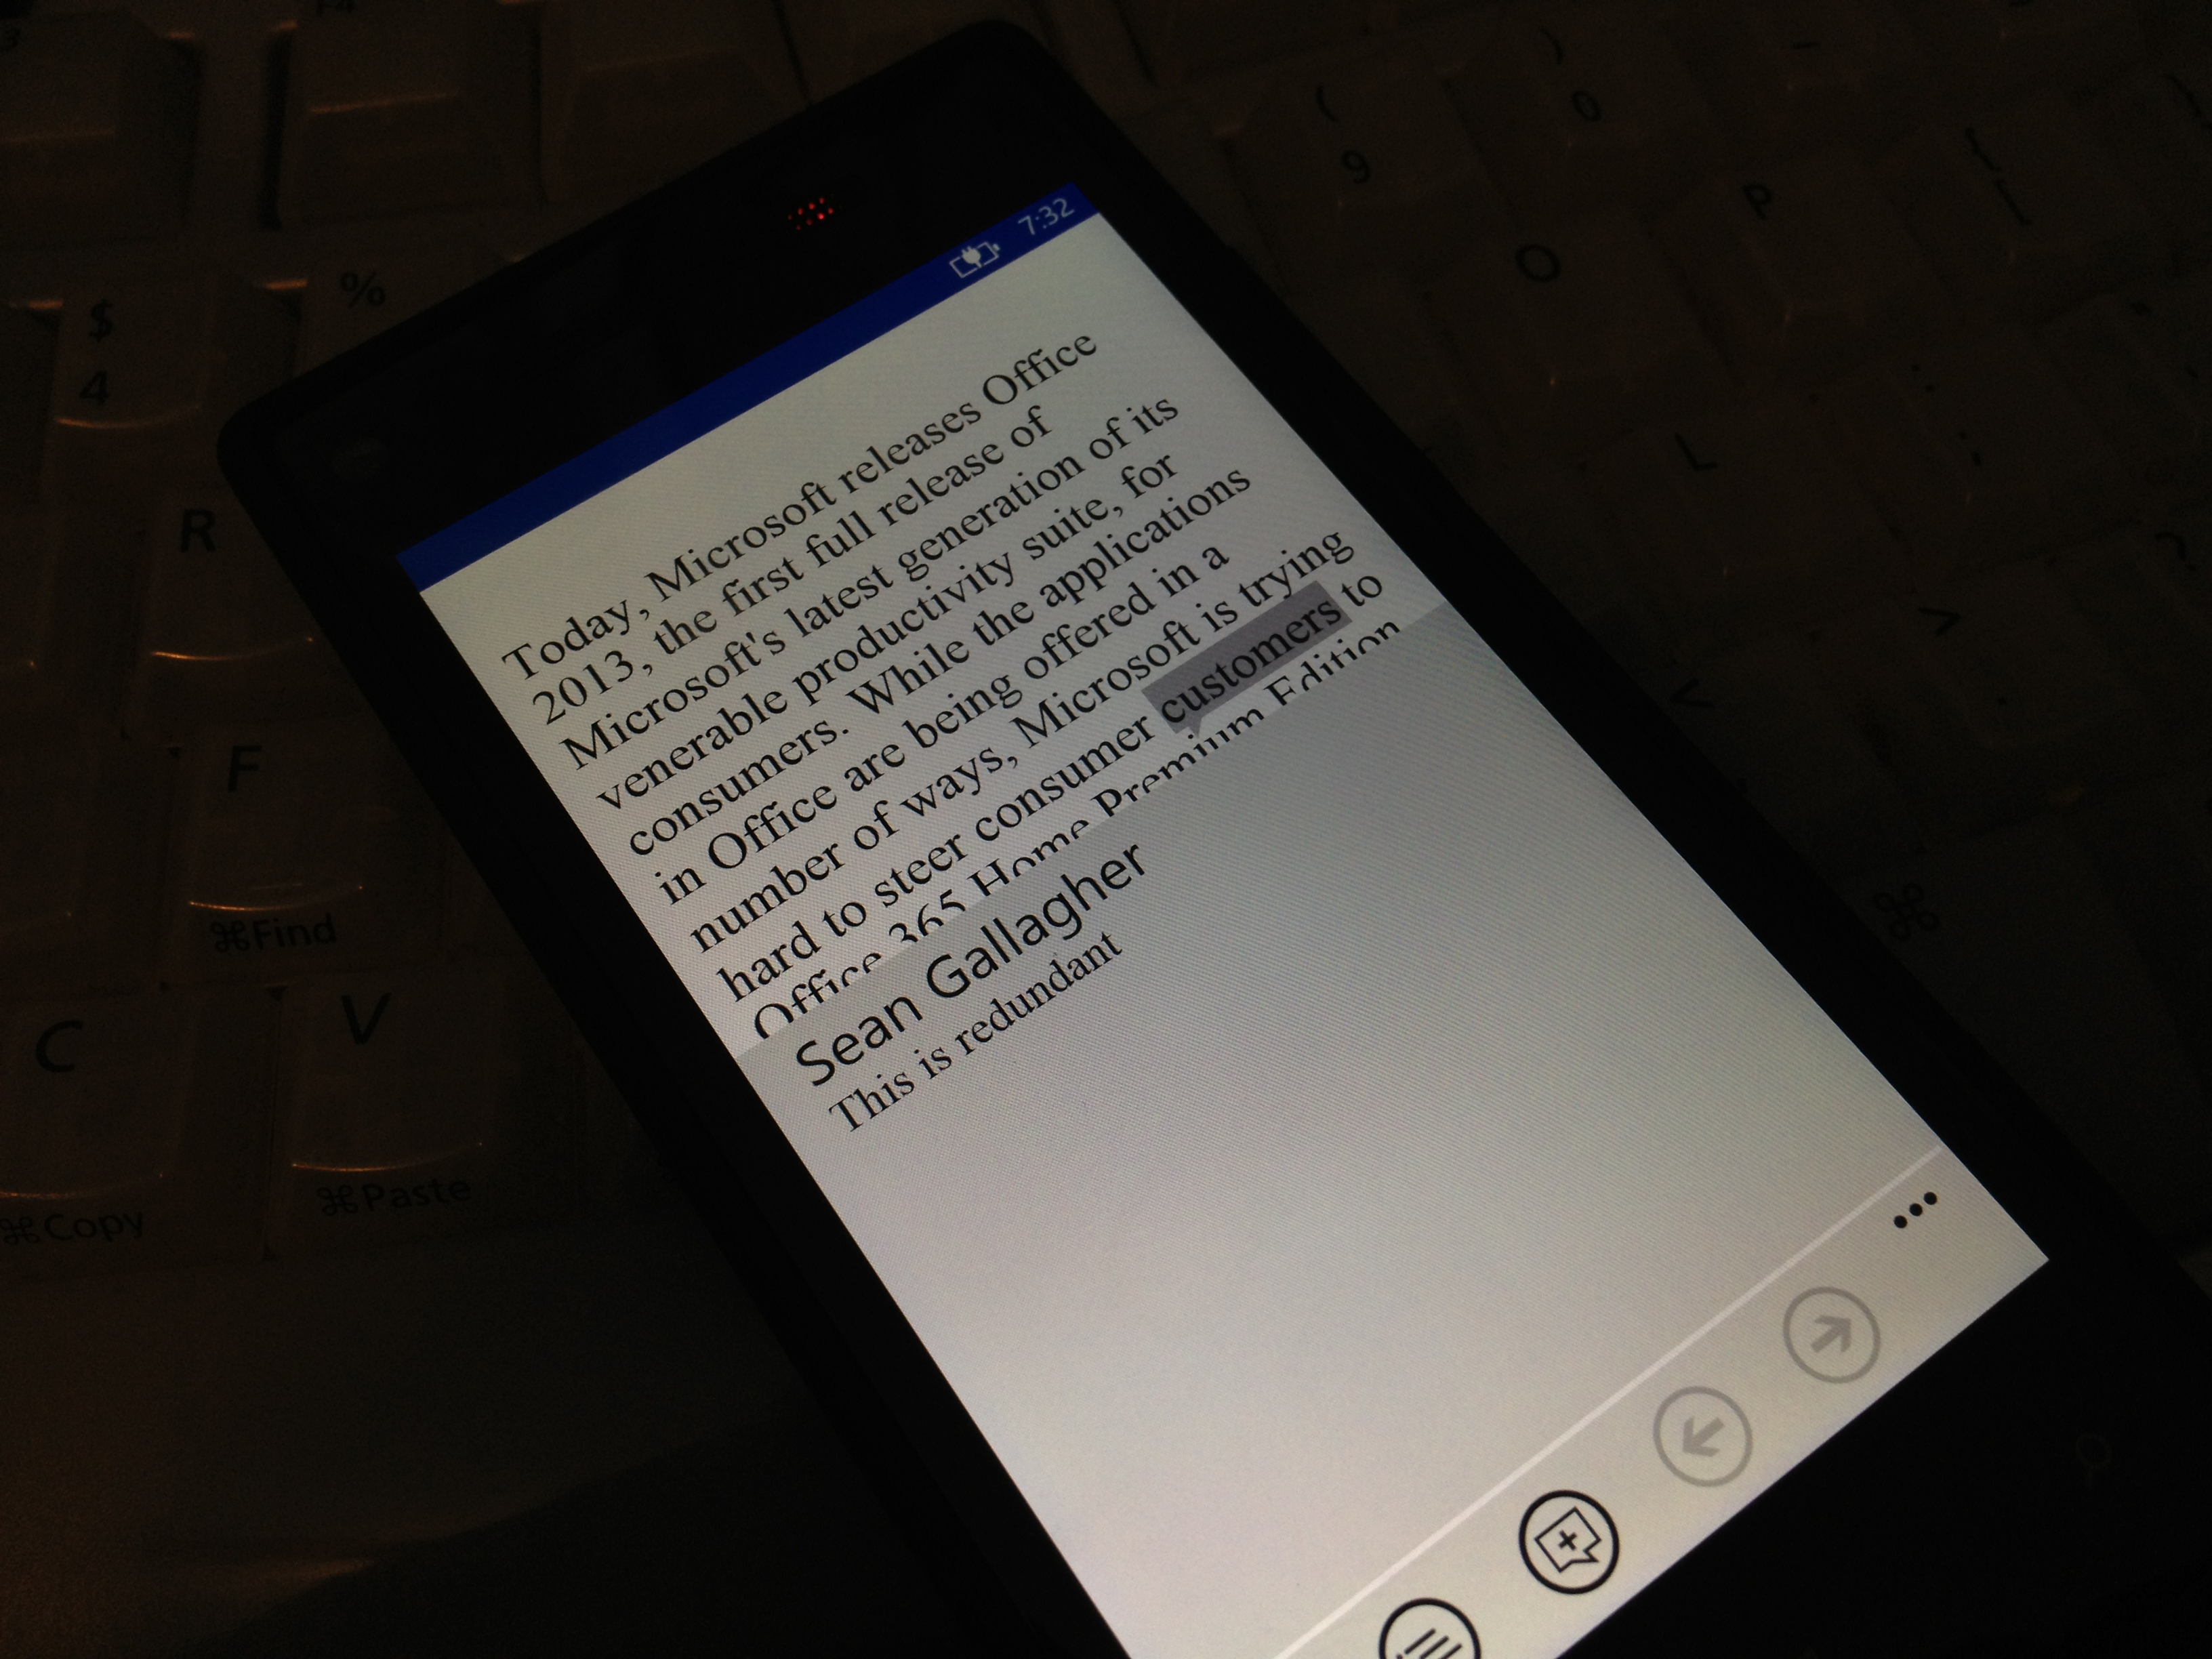 The same document, opened from Skydrive on an HTC 8x in Windows Phone 8's Office app.